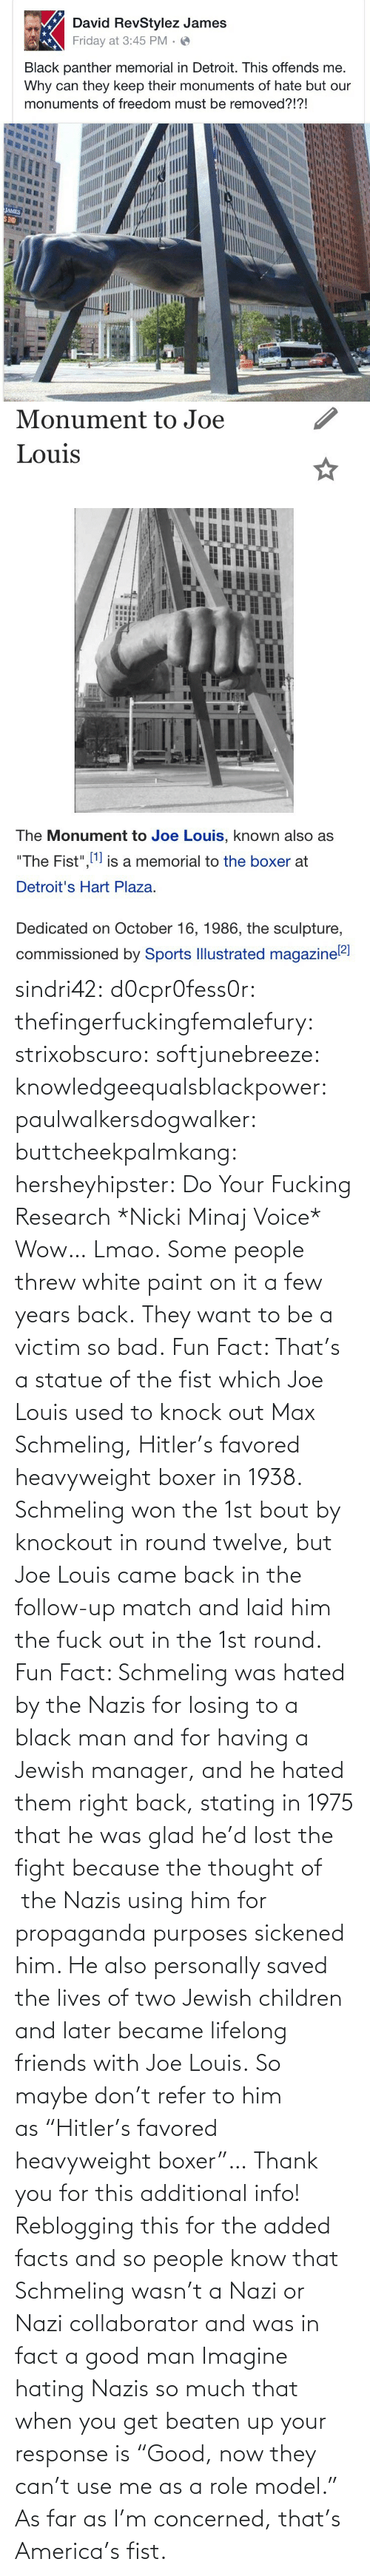 "use: sindri42:  d0cpr0fess0r:  thefingerfuckingfemalefury:  strixobscuro:  softjunebreeze:  knowledgeequalsblackpower:  paulwalkersdogwalker:   buttcheekpalmkang:   hersheyhipster:  Do Your Fucking Research *Nicki Minaj Voice*    Wow… Lmao.   Some people threw white paint on it a few years back.   They want to be a victim so bad.  Fun Fact: That's a statue of the fist which Joe Louis used to knock out Max Schmeling, Hitler's favored heavyweight boxer in 1938. Schmeling won the 1st bout by knockout in round twelve, but Joe Louis came back in the follow-up match and laid him the fuck out in the 1st round.  Fun Fact: Schmeling was hated by the Nazis for losing to a black man and for having a Jewish manager, and he hated them right back, stating in 1975 that he was glad he'd lost the fight because the thought of  the Nazis using him for propaganda purposes sickened him. He also personally saved the lives of two Jewish children and later became lifelong friends with Joe Louis. So maybe don't refer to him as ""Hitler's favored heavyweight boxer""…  Thank you for this additional info! Reblogging this for the added facts and so people know that Schmeling wasn't a Nazi or Nazi collaborator and was in fact a good man   Imagine hating Nazis so much that when you get beaten up your response is ""Good, now they can't use me as a role model.""  As far as I'm concerned, that's America's fist."